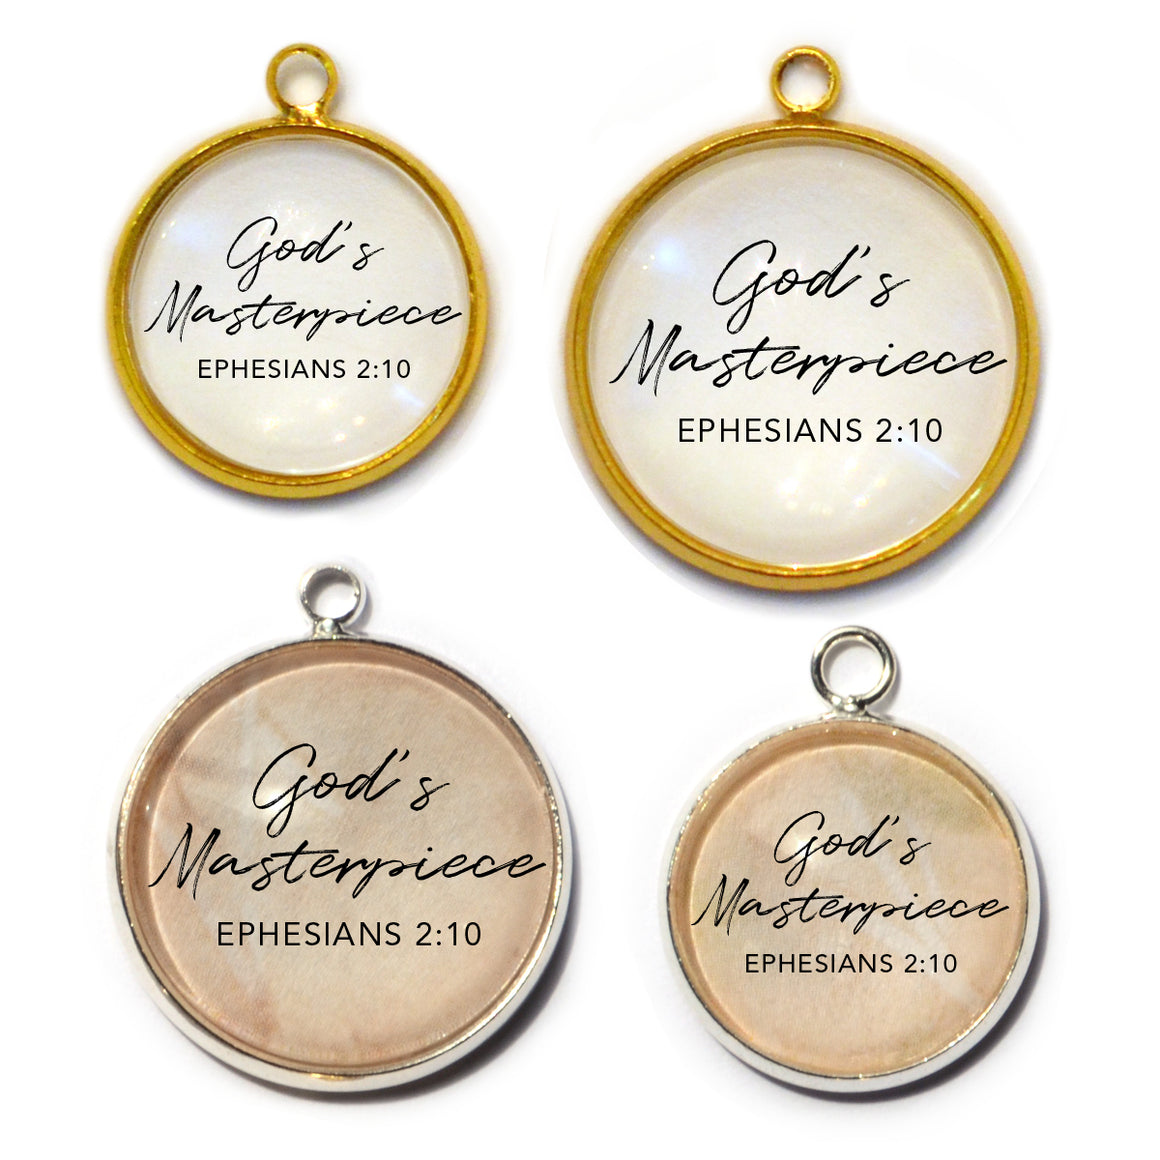 God's Masterpiece – Ephesians 2:10  Scripture Charms for Jewelry Making, 16 or 20mm, Silver, Gold